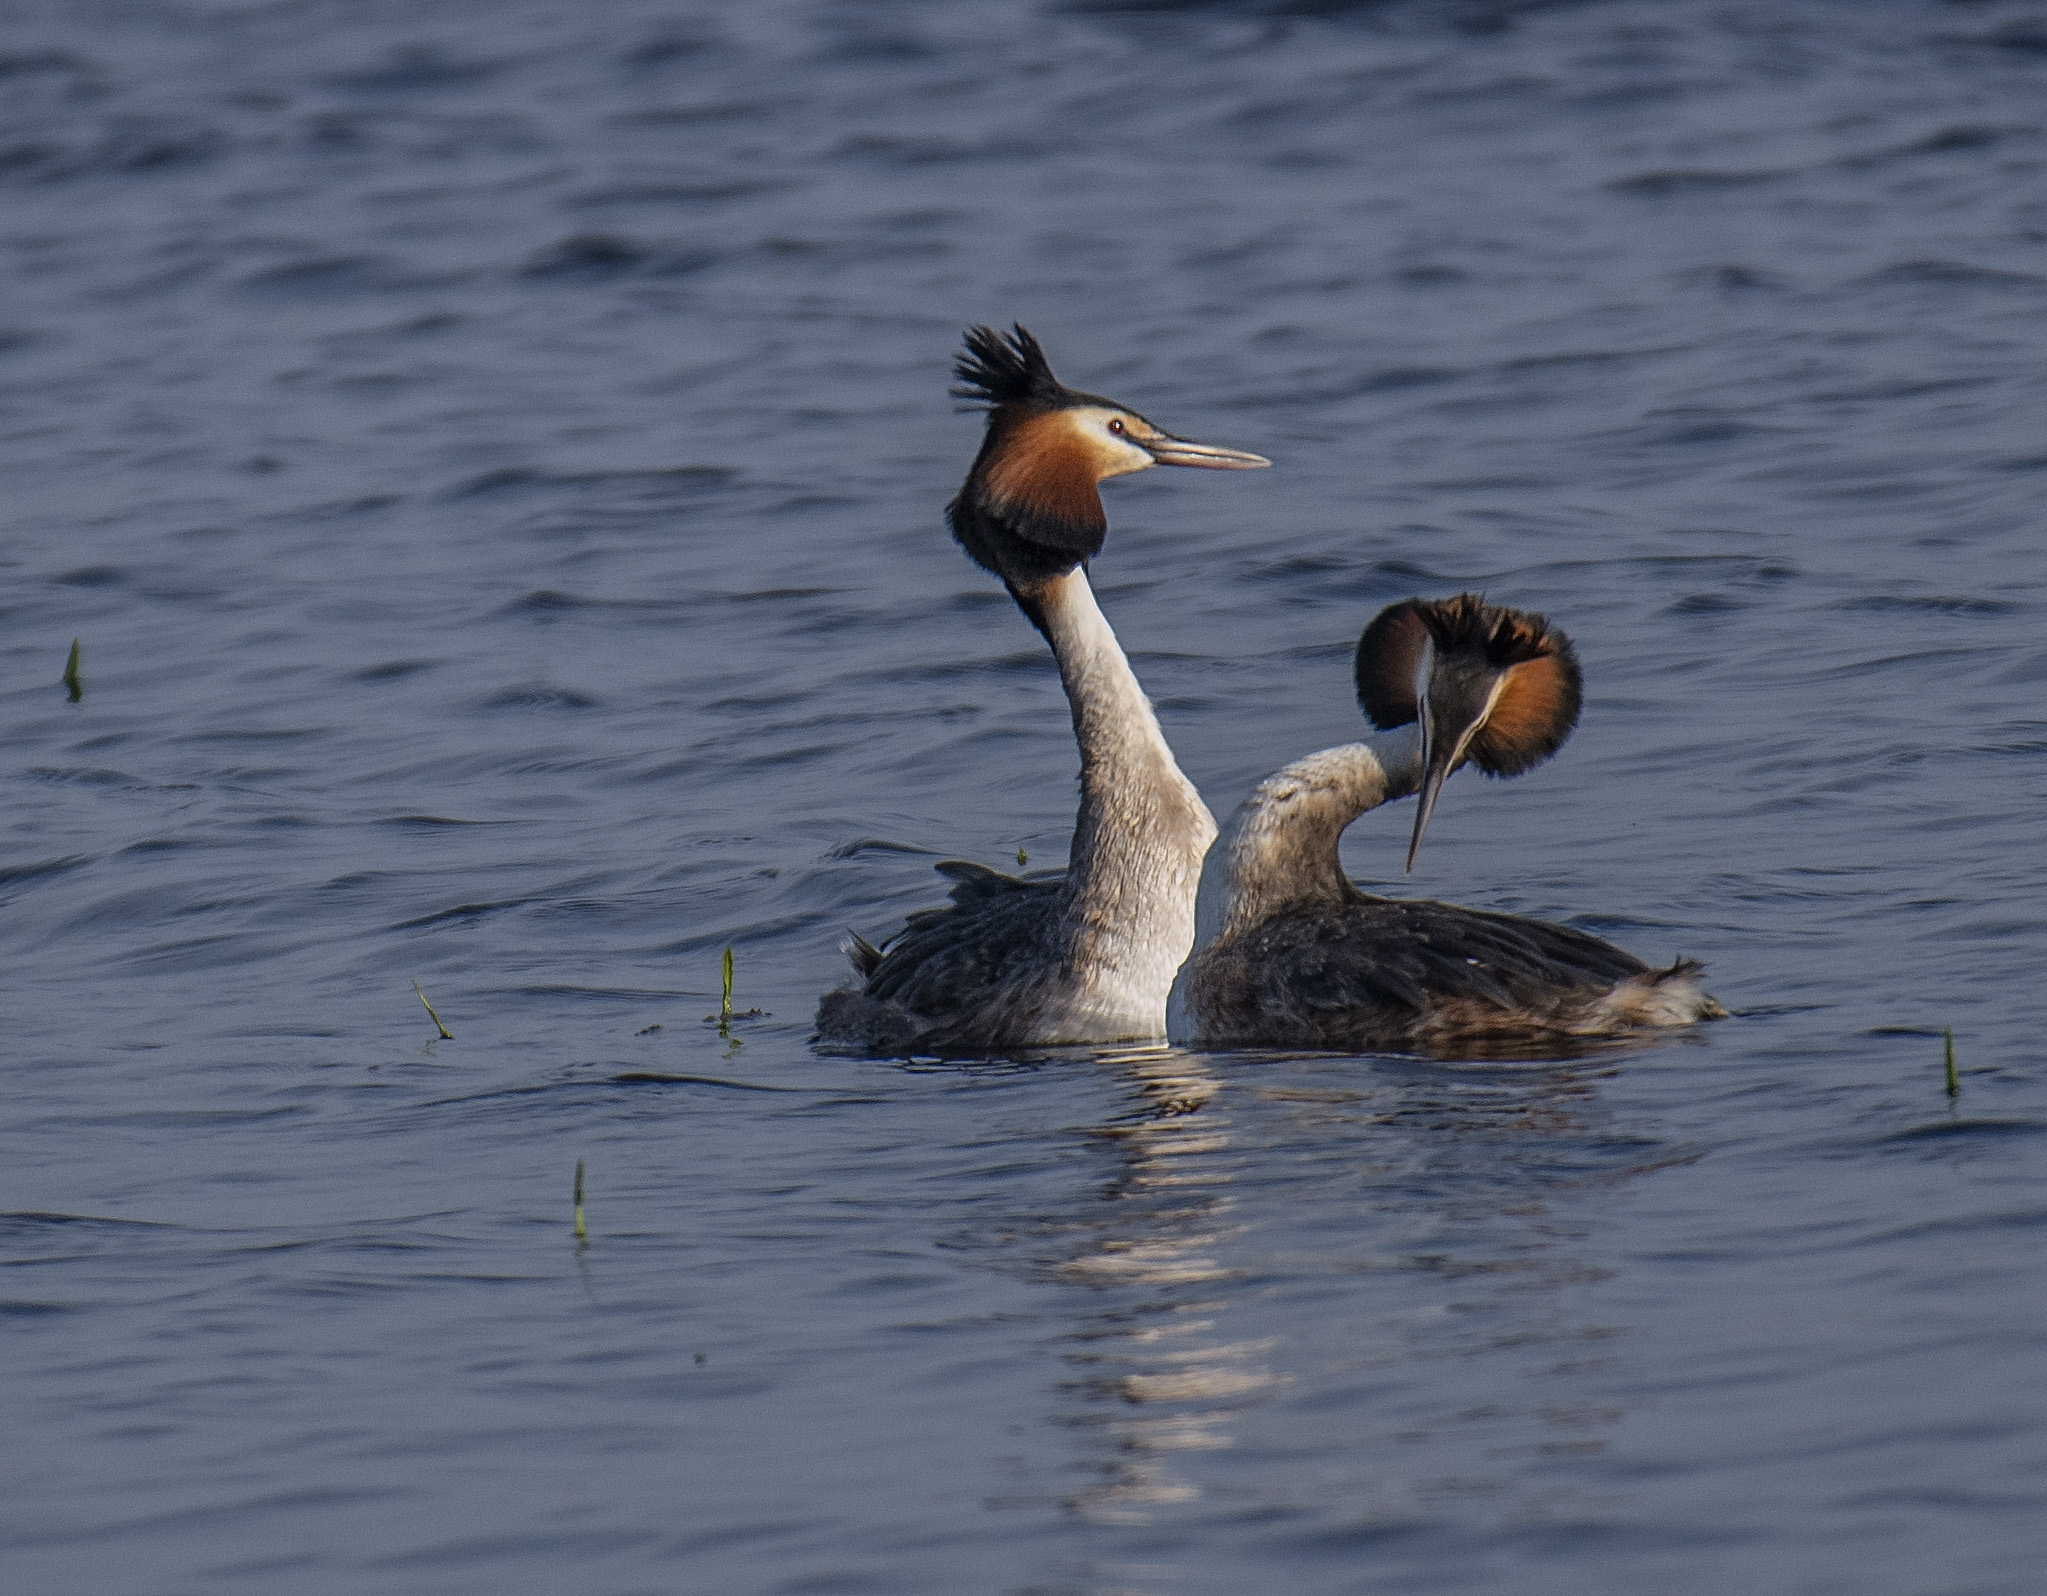 Skäggdopping/Great Crested Grebe